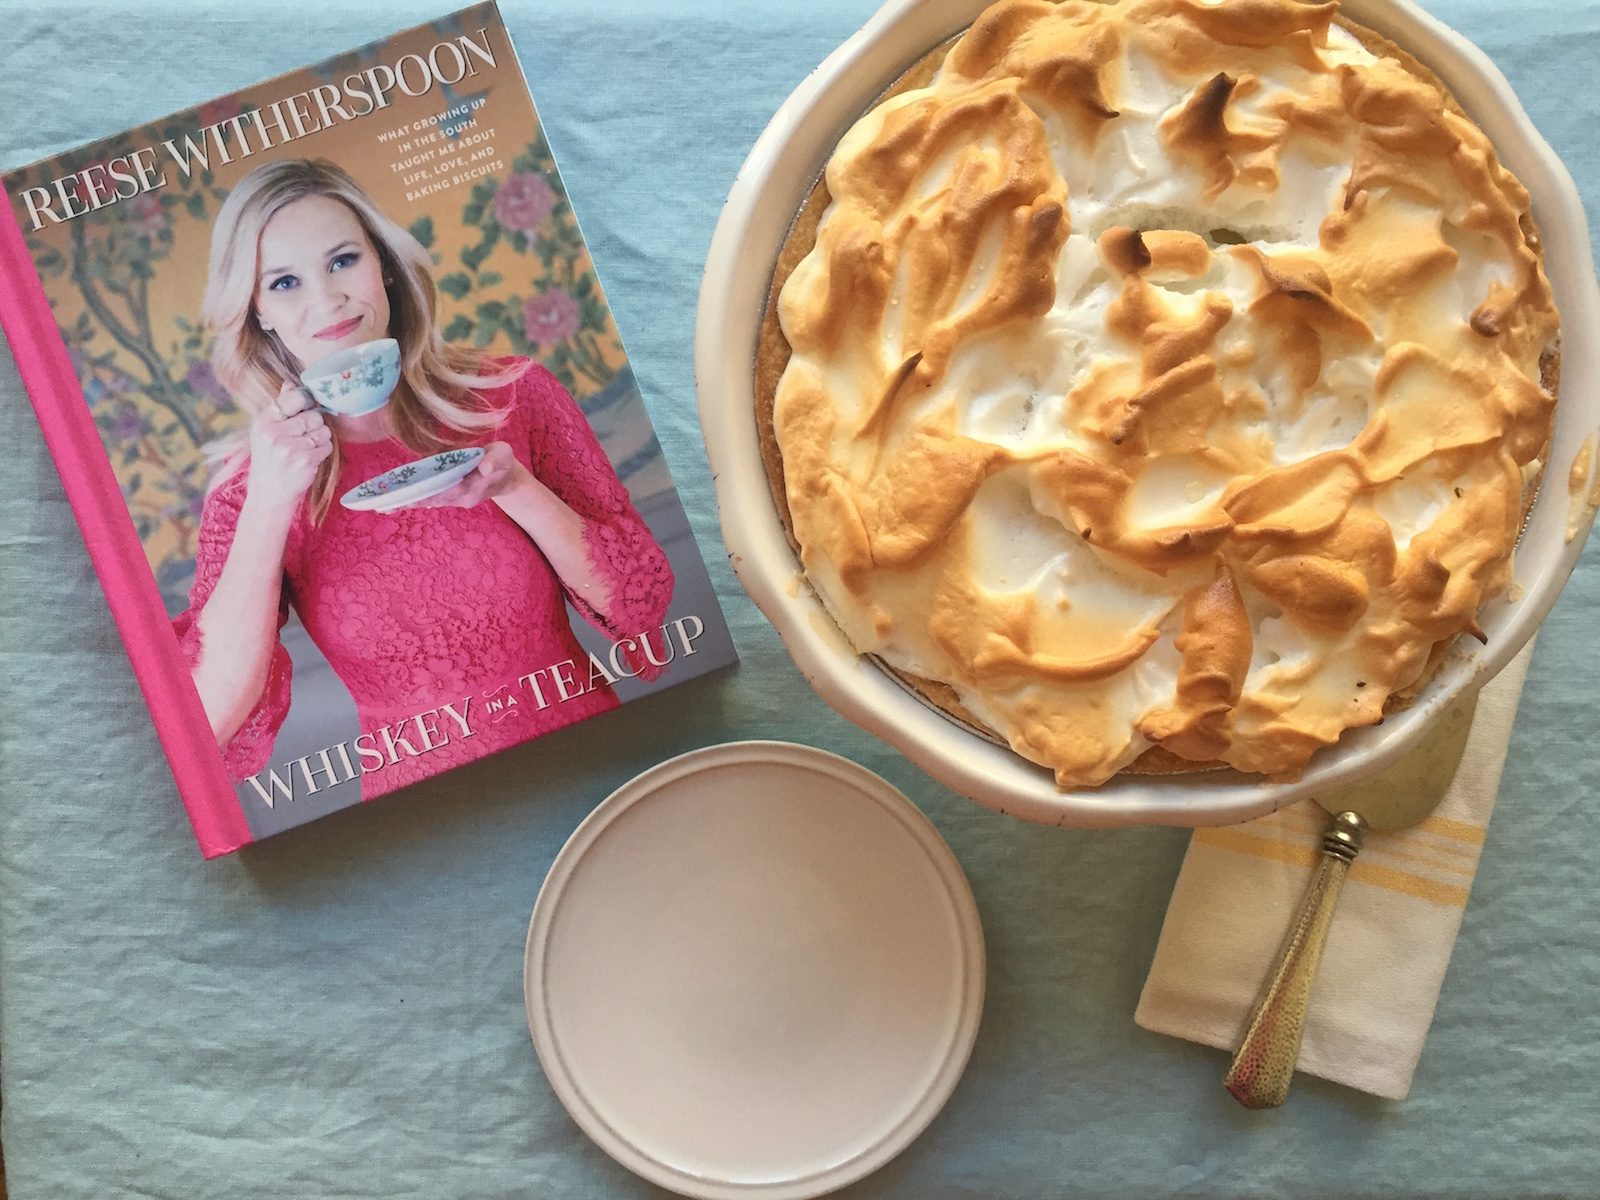 Reese Witherspoon's Whiskey in a Teacup with a Lemon Meringue Pie and plate